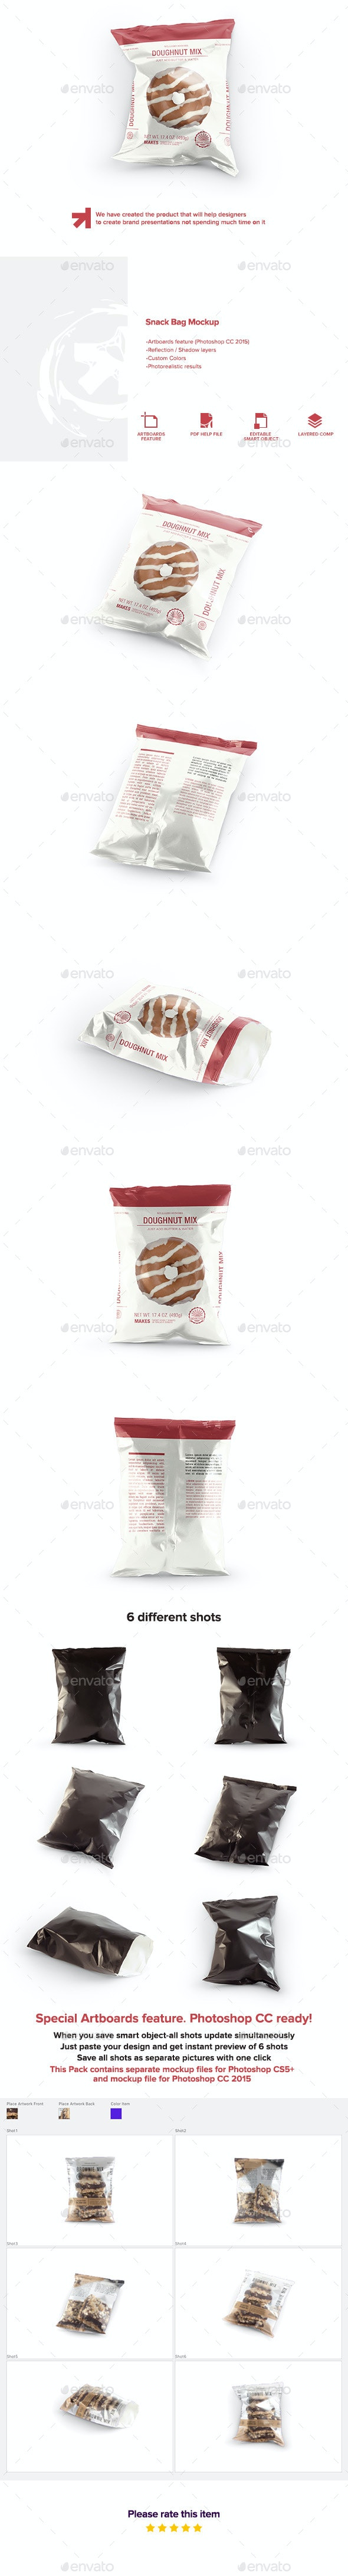 Snack Bag Pouch Mockup - Food and Drink Packaging